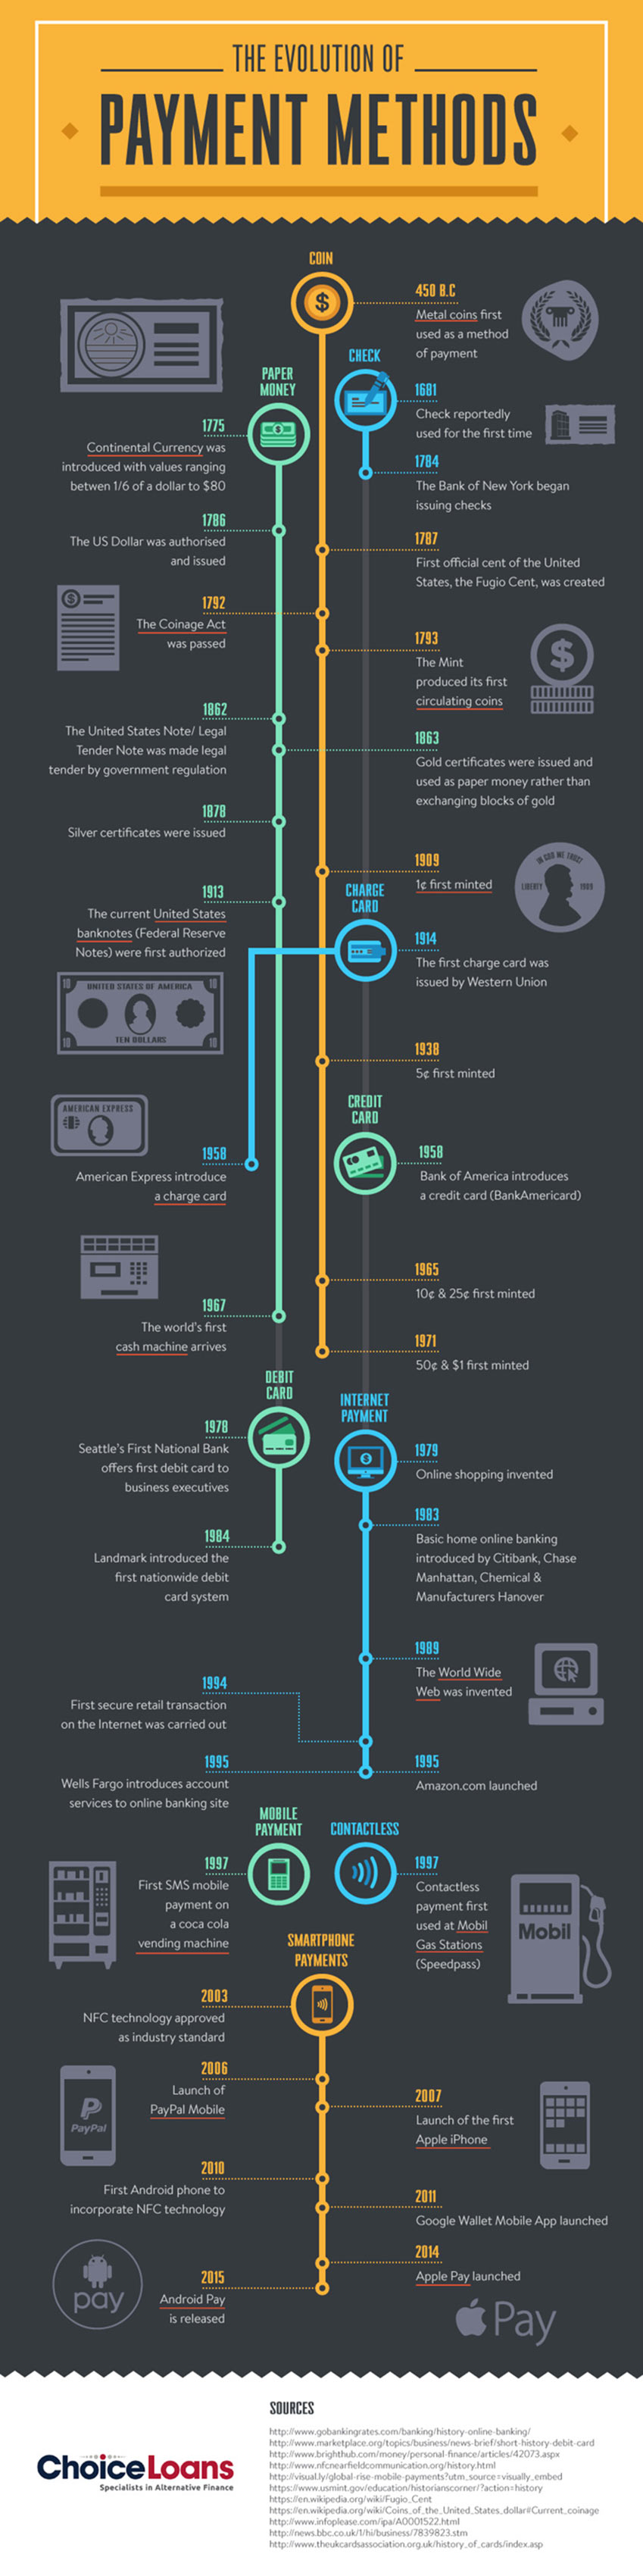 The Evolution of Payment Methods Infographic